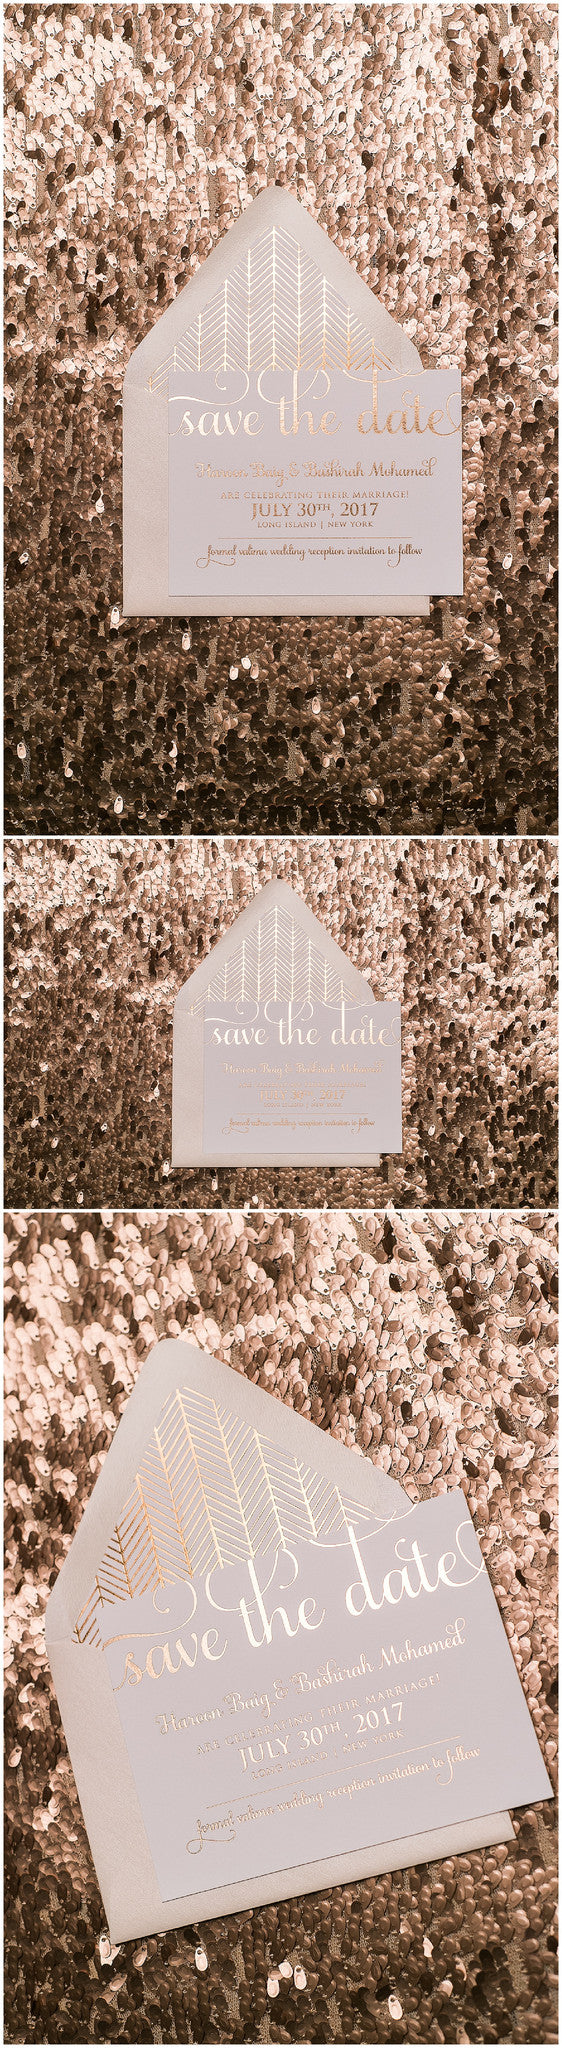 Rose Gold Glitter Wedding Invitations, Rose Gold, Rose Gold Foil, Save the Date Invitations, Adele Suite, Rose Gold Patterned Invitations, Boho Save the Date Wedding Invitations, Blush, Blush and Rose Gold, Wedding Invitations, Just Invite Me